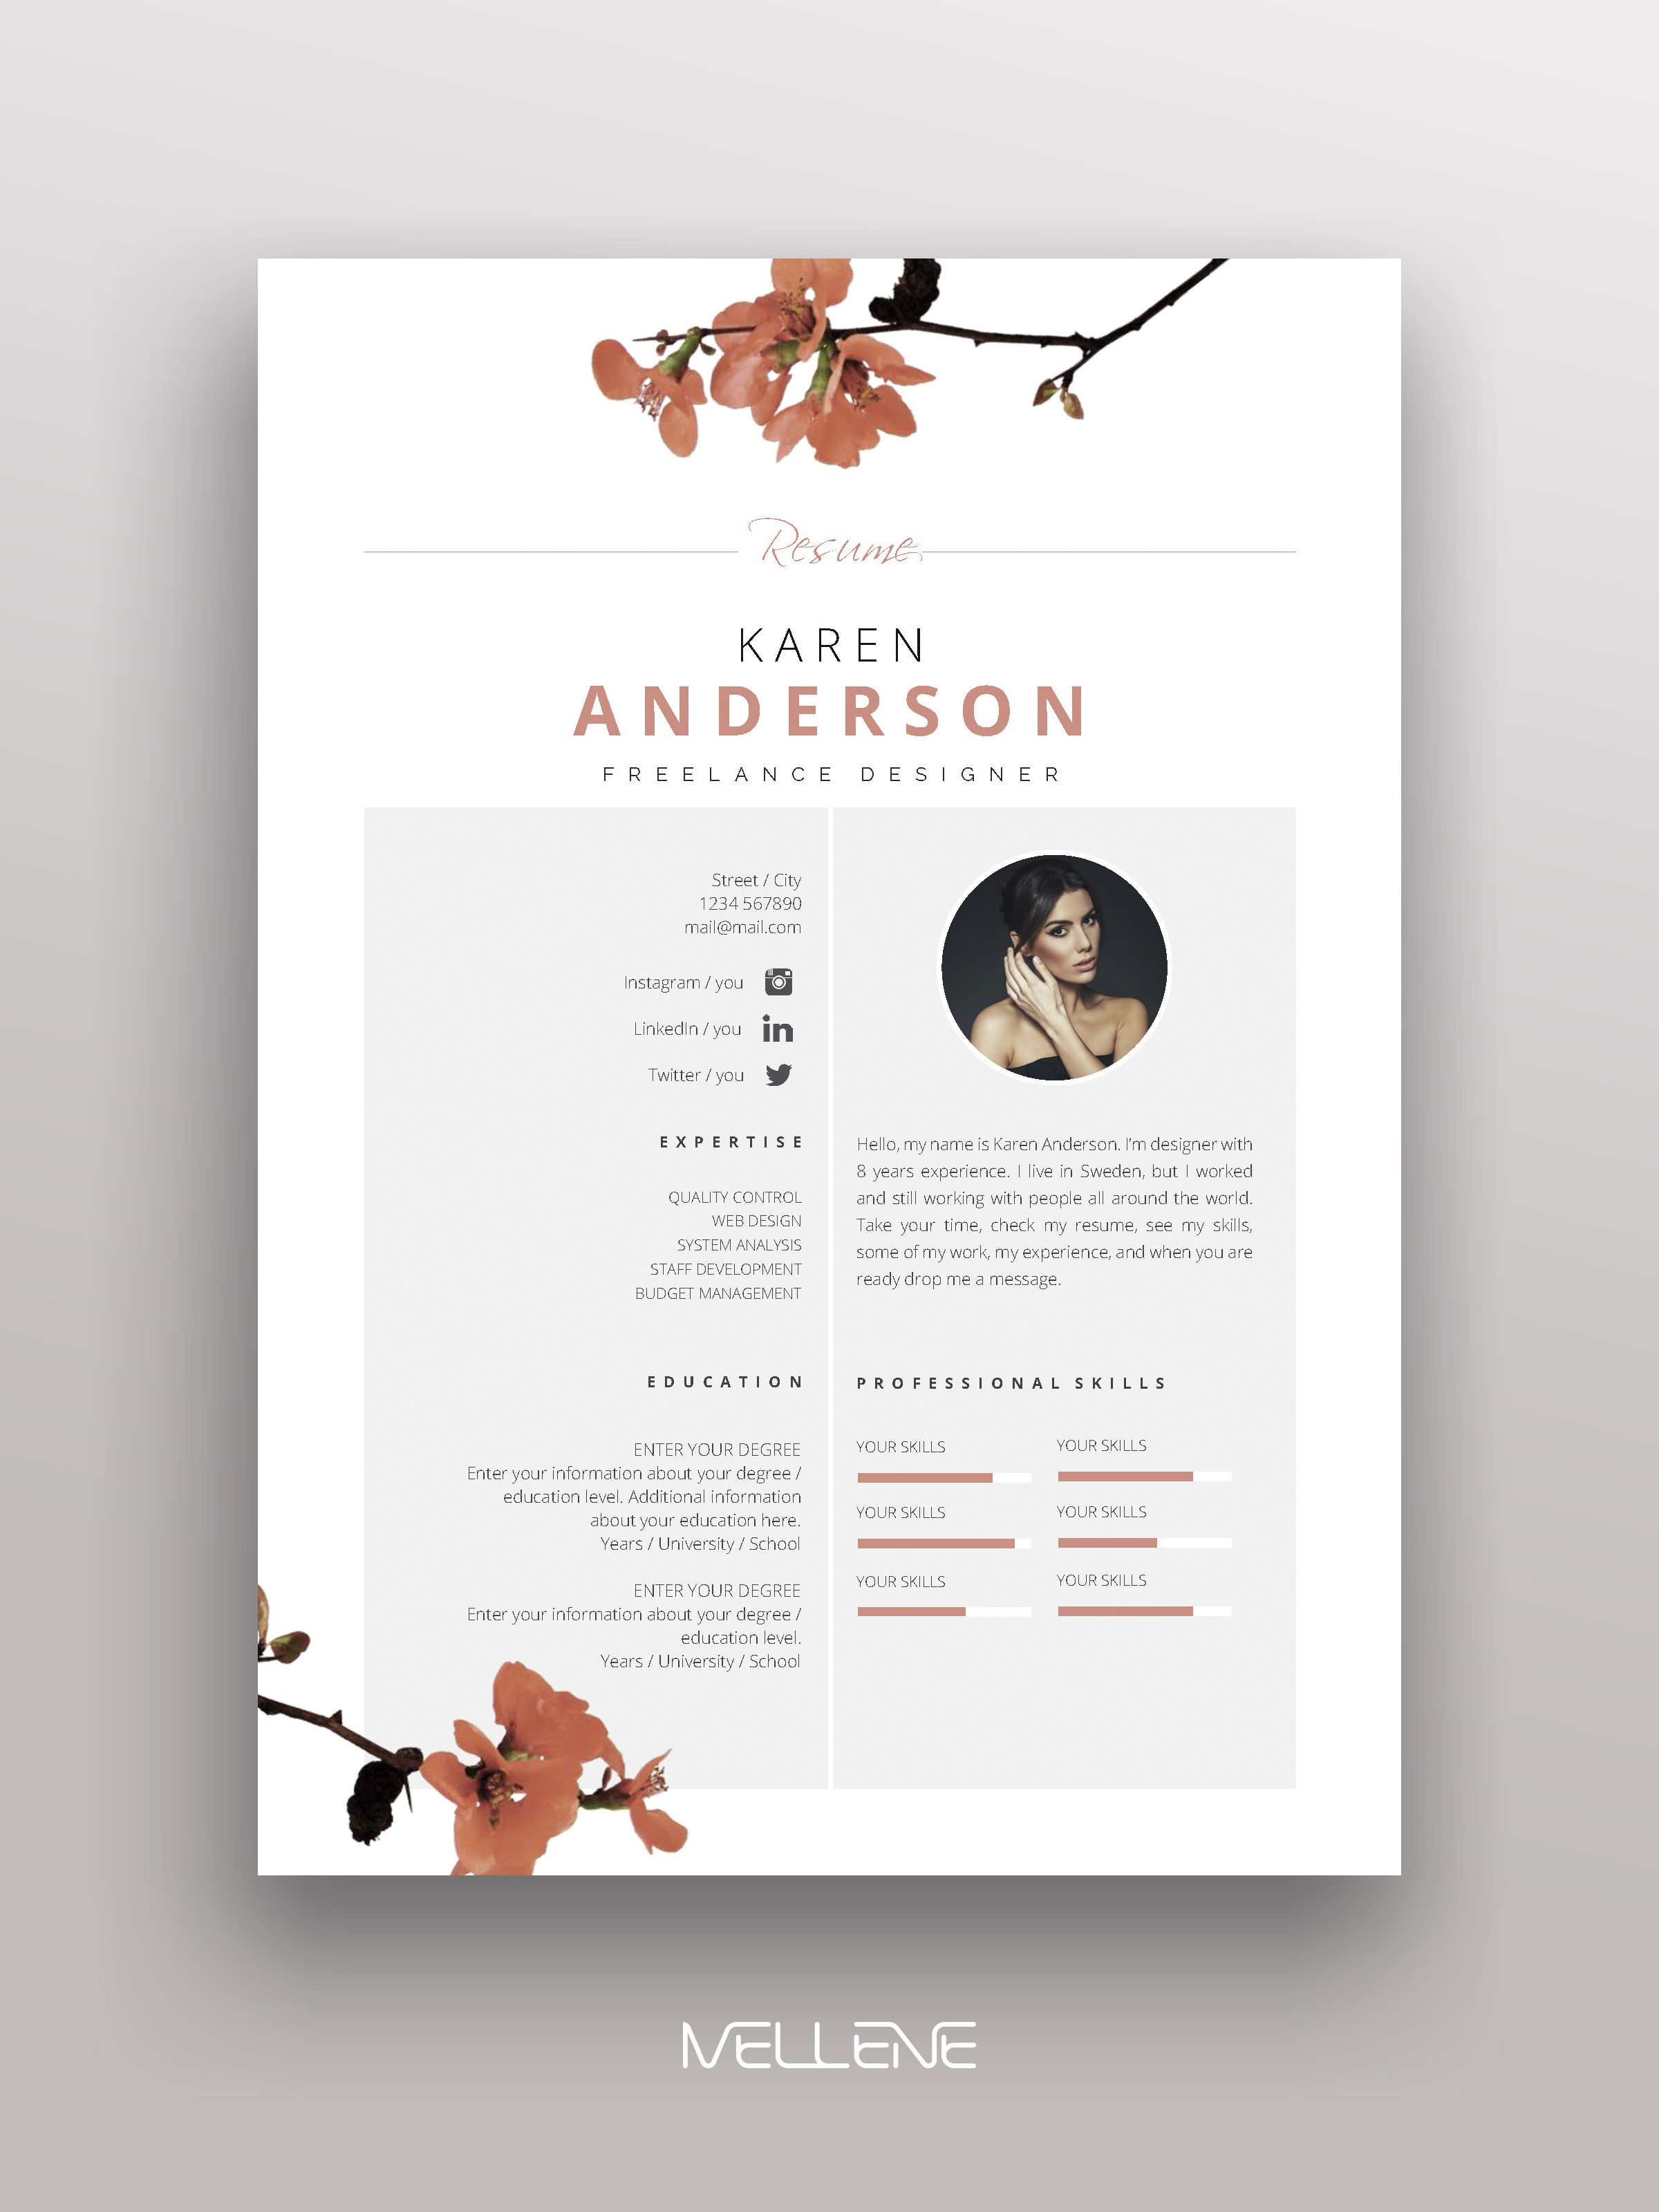 Resume Cv Template For Ms Word Professional Minimal Application Cover Letter Layout Inspiration Resume Design Cv Template Creative Cv